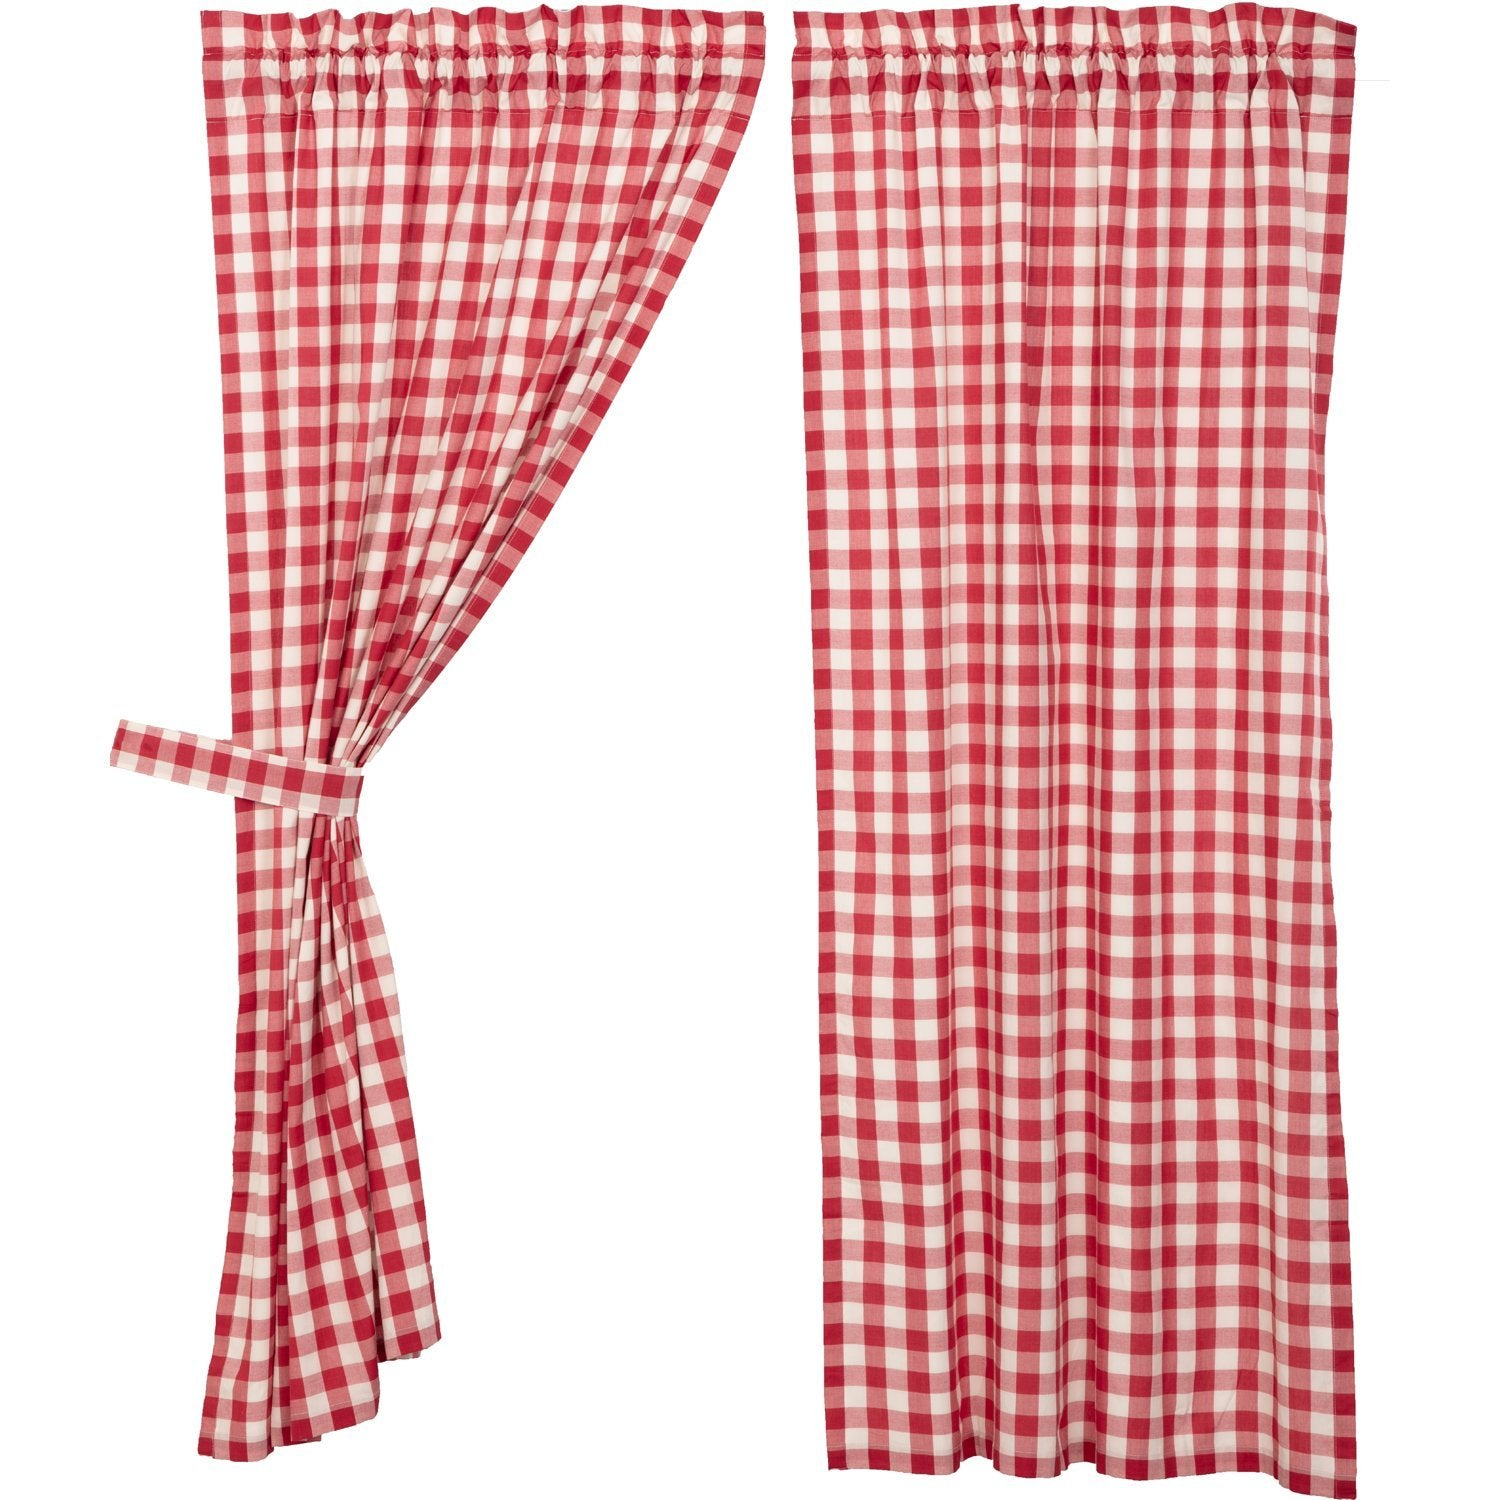 Annie Buffalo Red Check Ruffled Panel Set of 2.